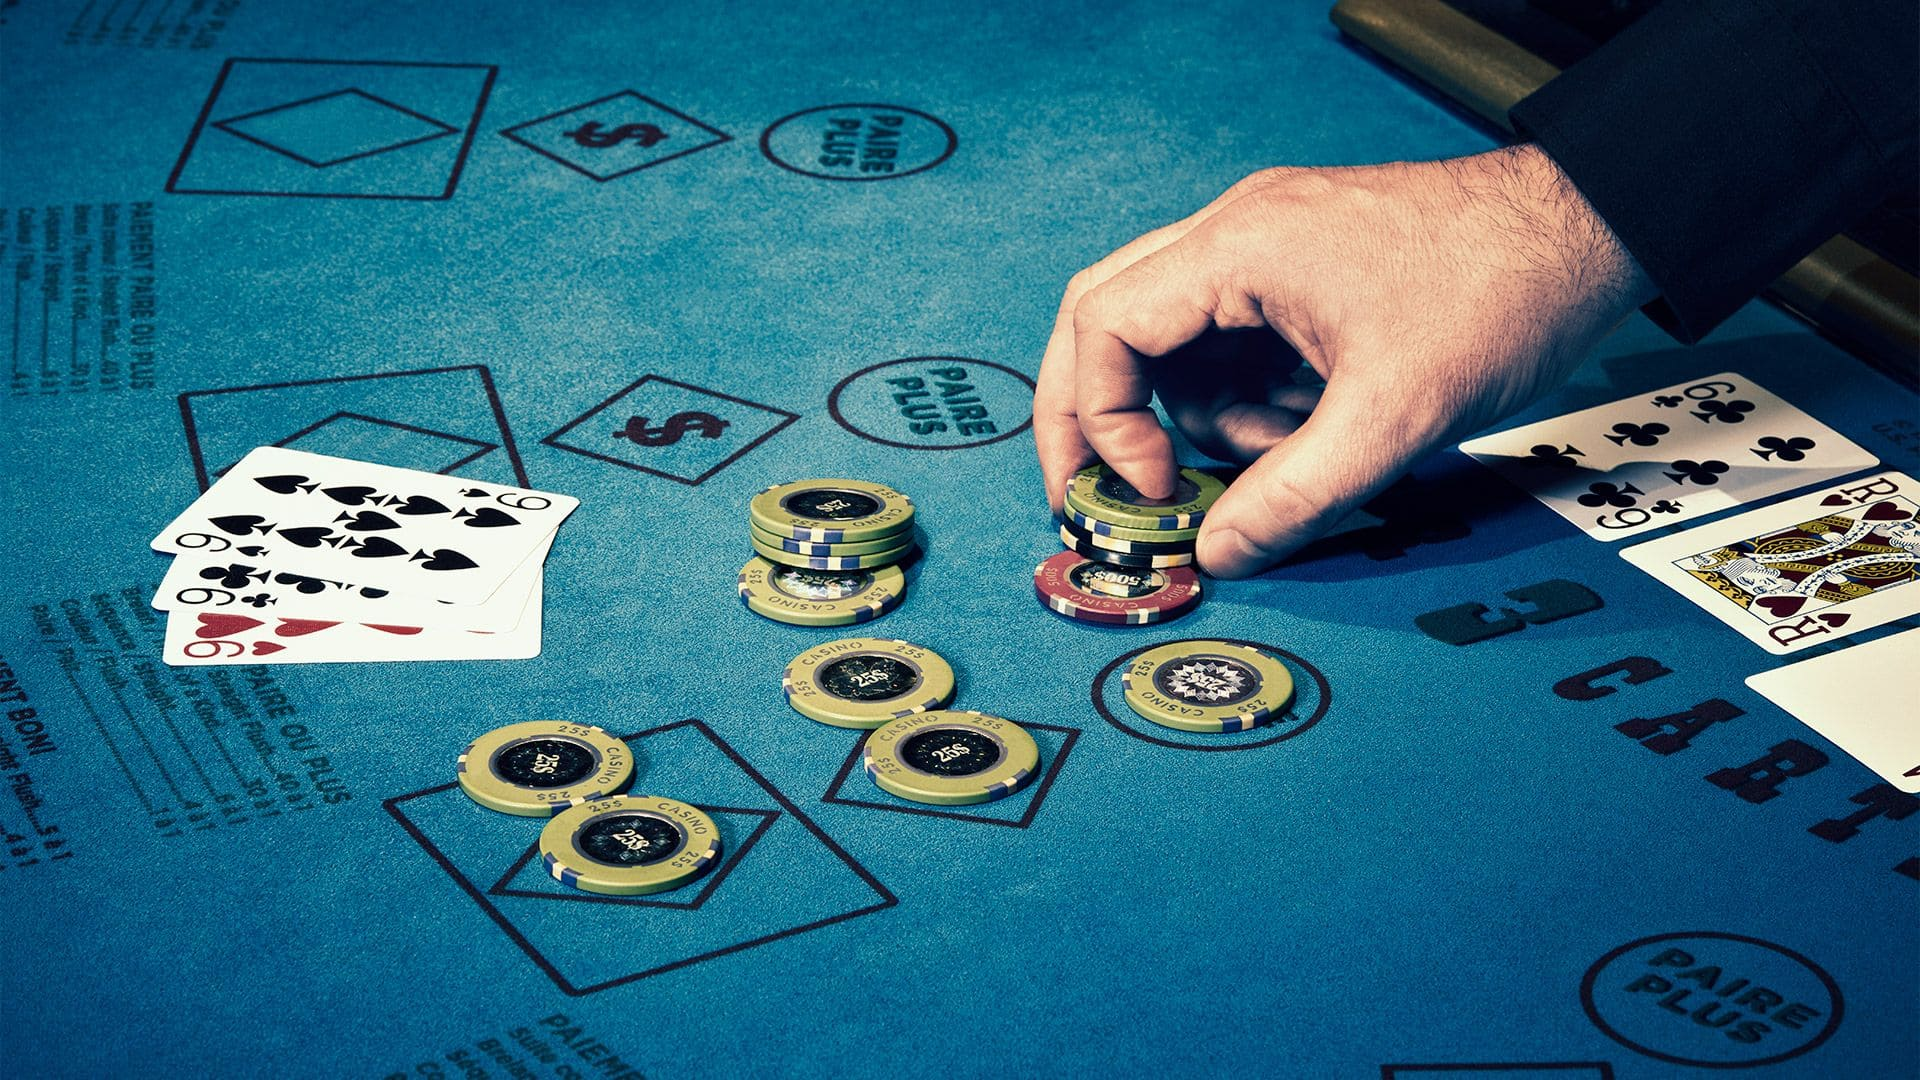 The Most Interested Online Gambling Games in 2021